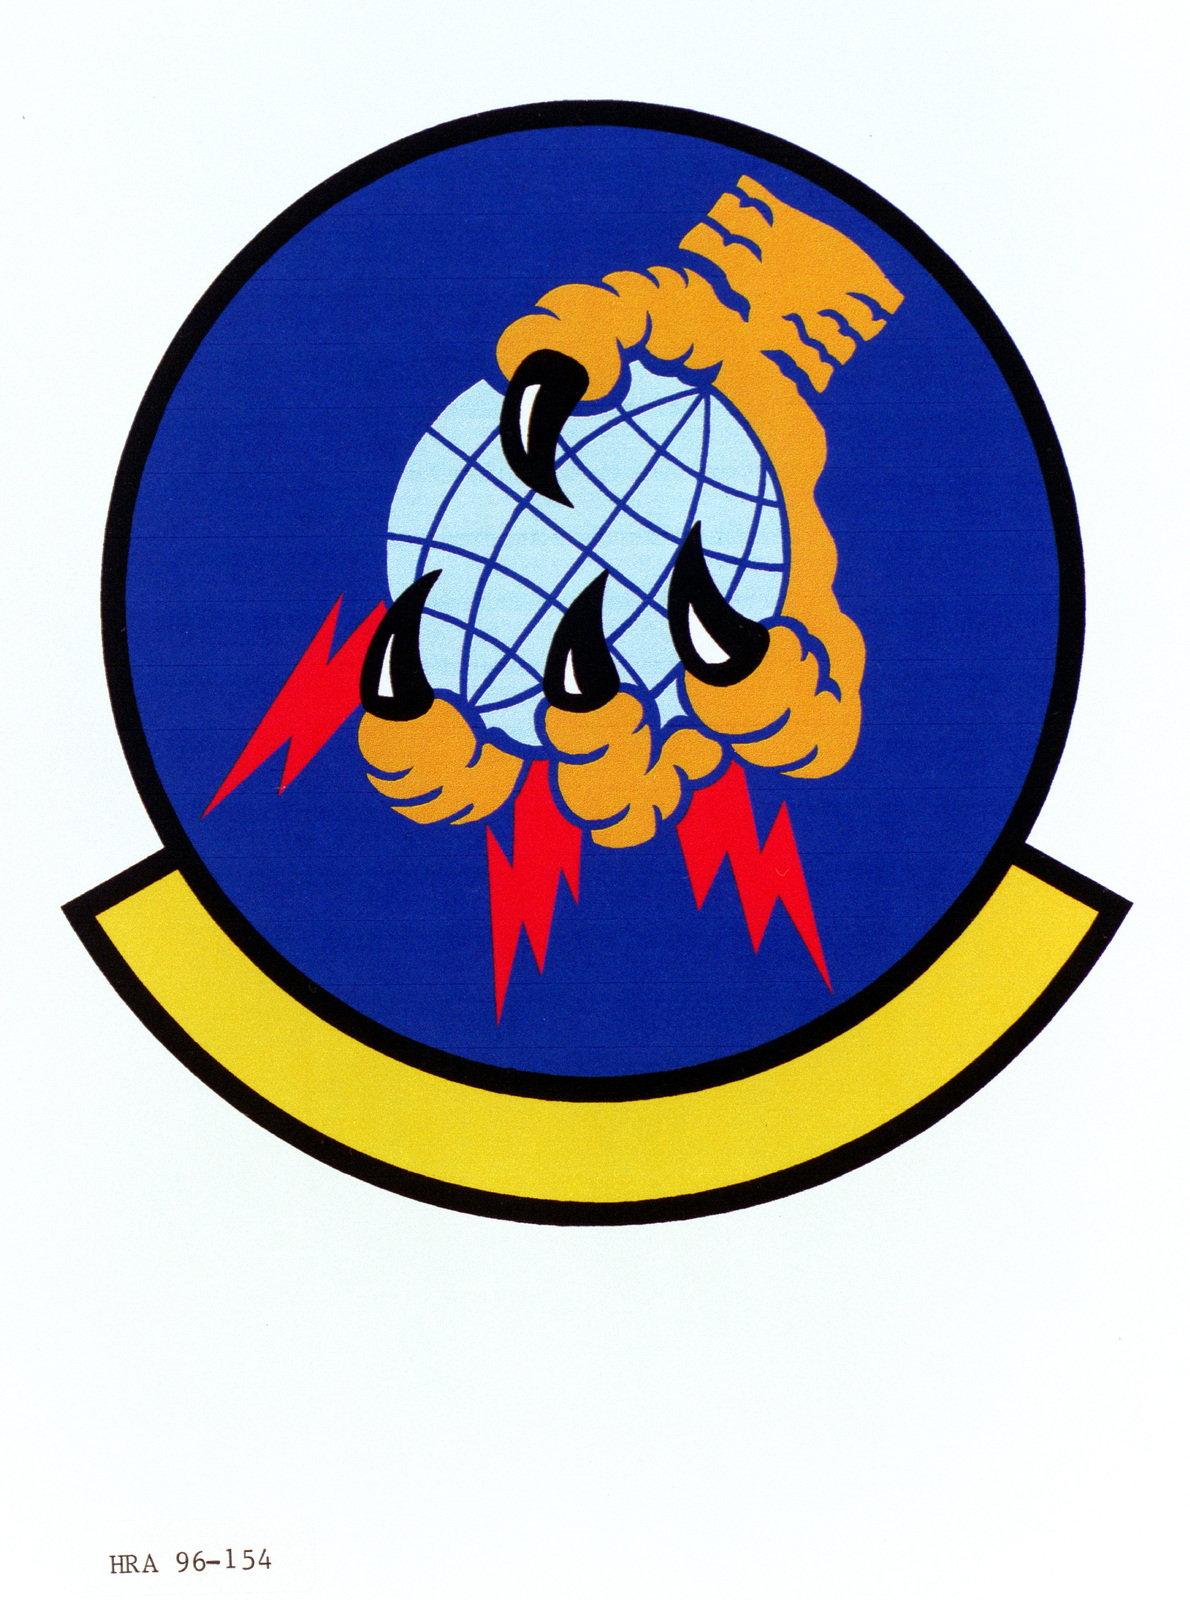 Air Force Organizational Emblem. 752nd Computer Systems Squadron Exact Date Shot Unknown